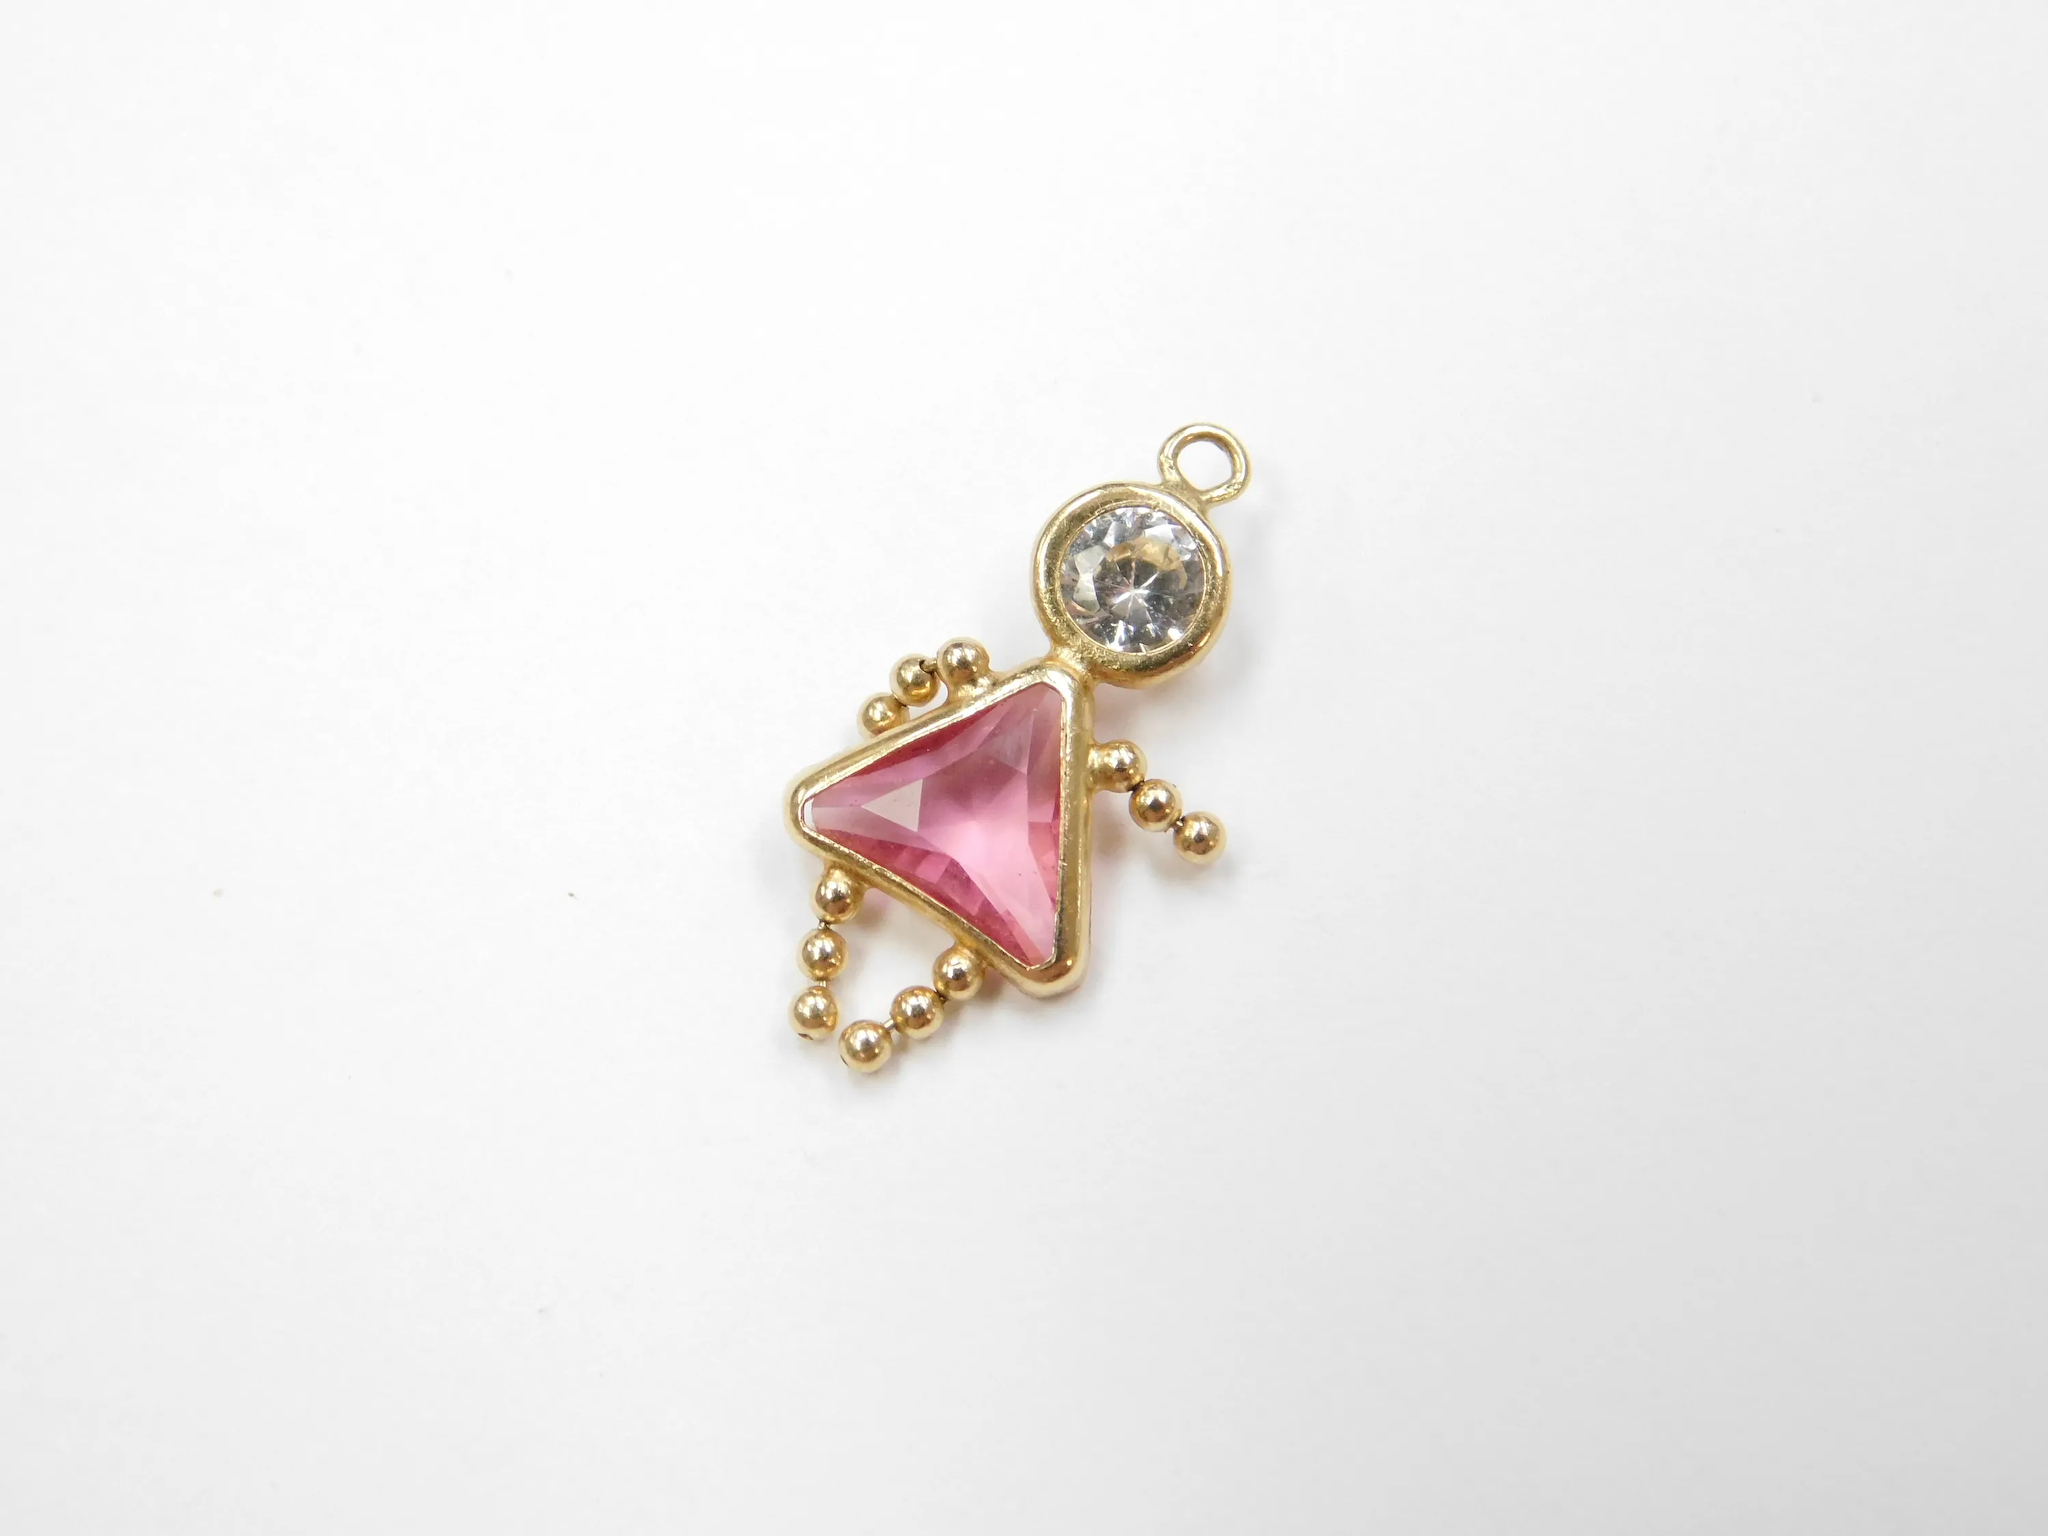 14k Gold October Birthstone Girl Charm ~ Faux Pink Tourmaline, Faux Diamond Pertaining To 2020 Pink October Birthstone Locket Element (View 14 of 25)